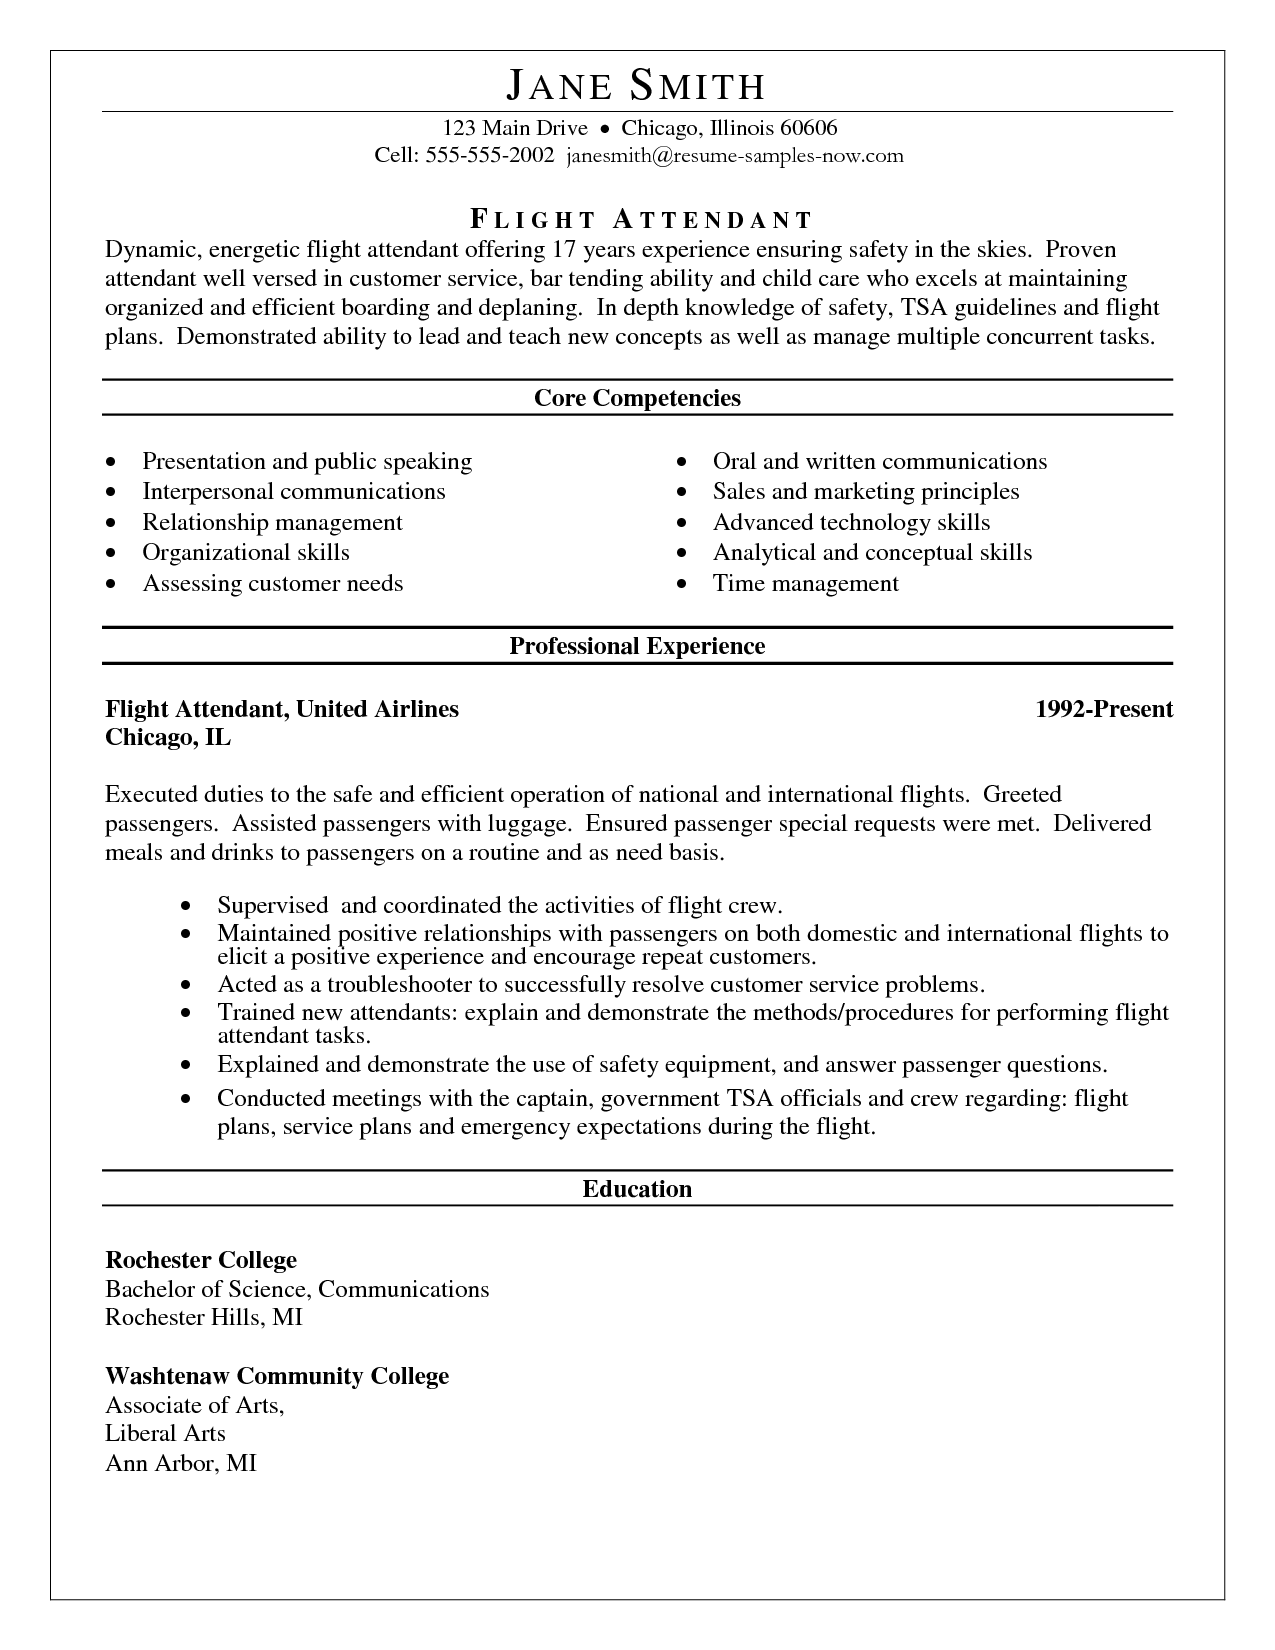 Core Competencies Resume resume template Pinterest Resume